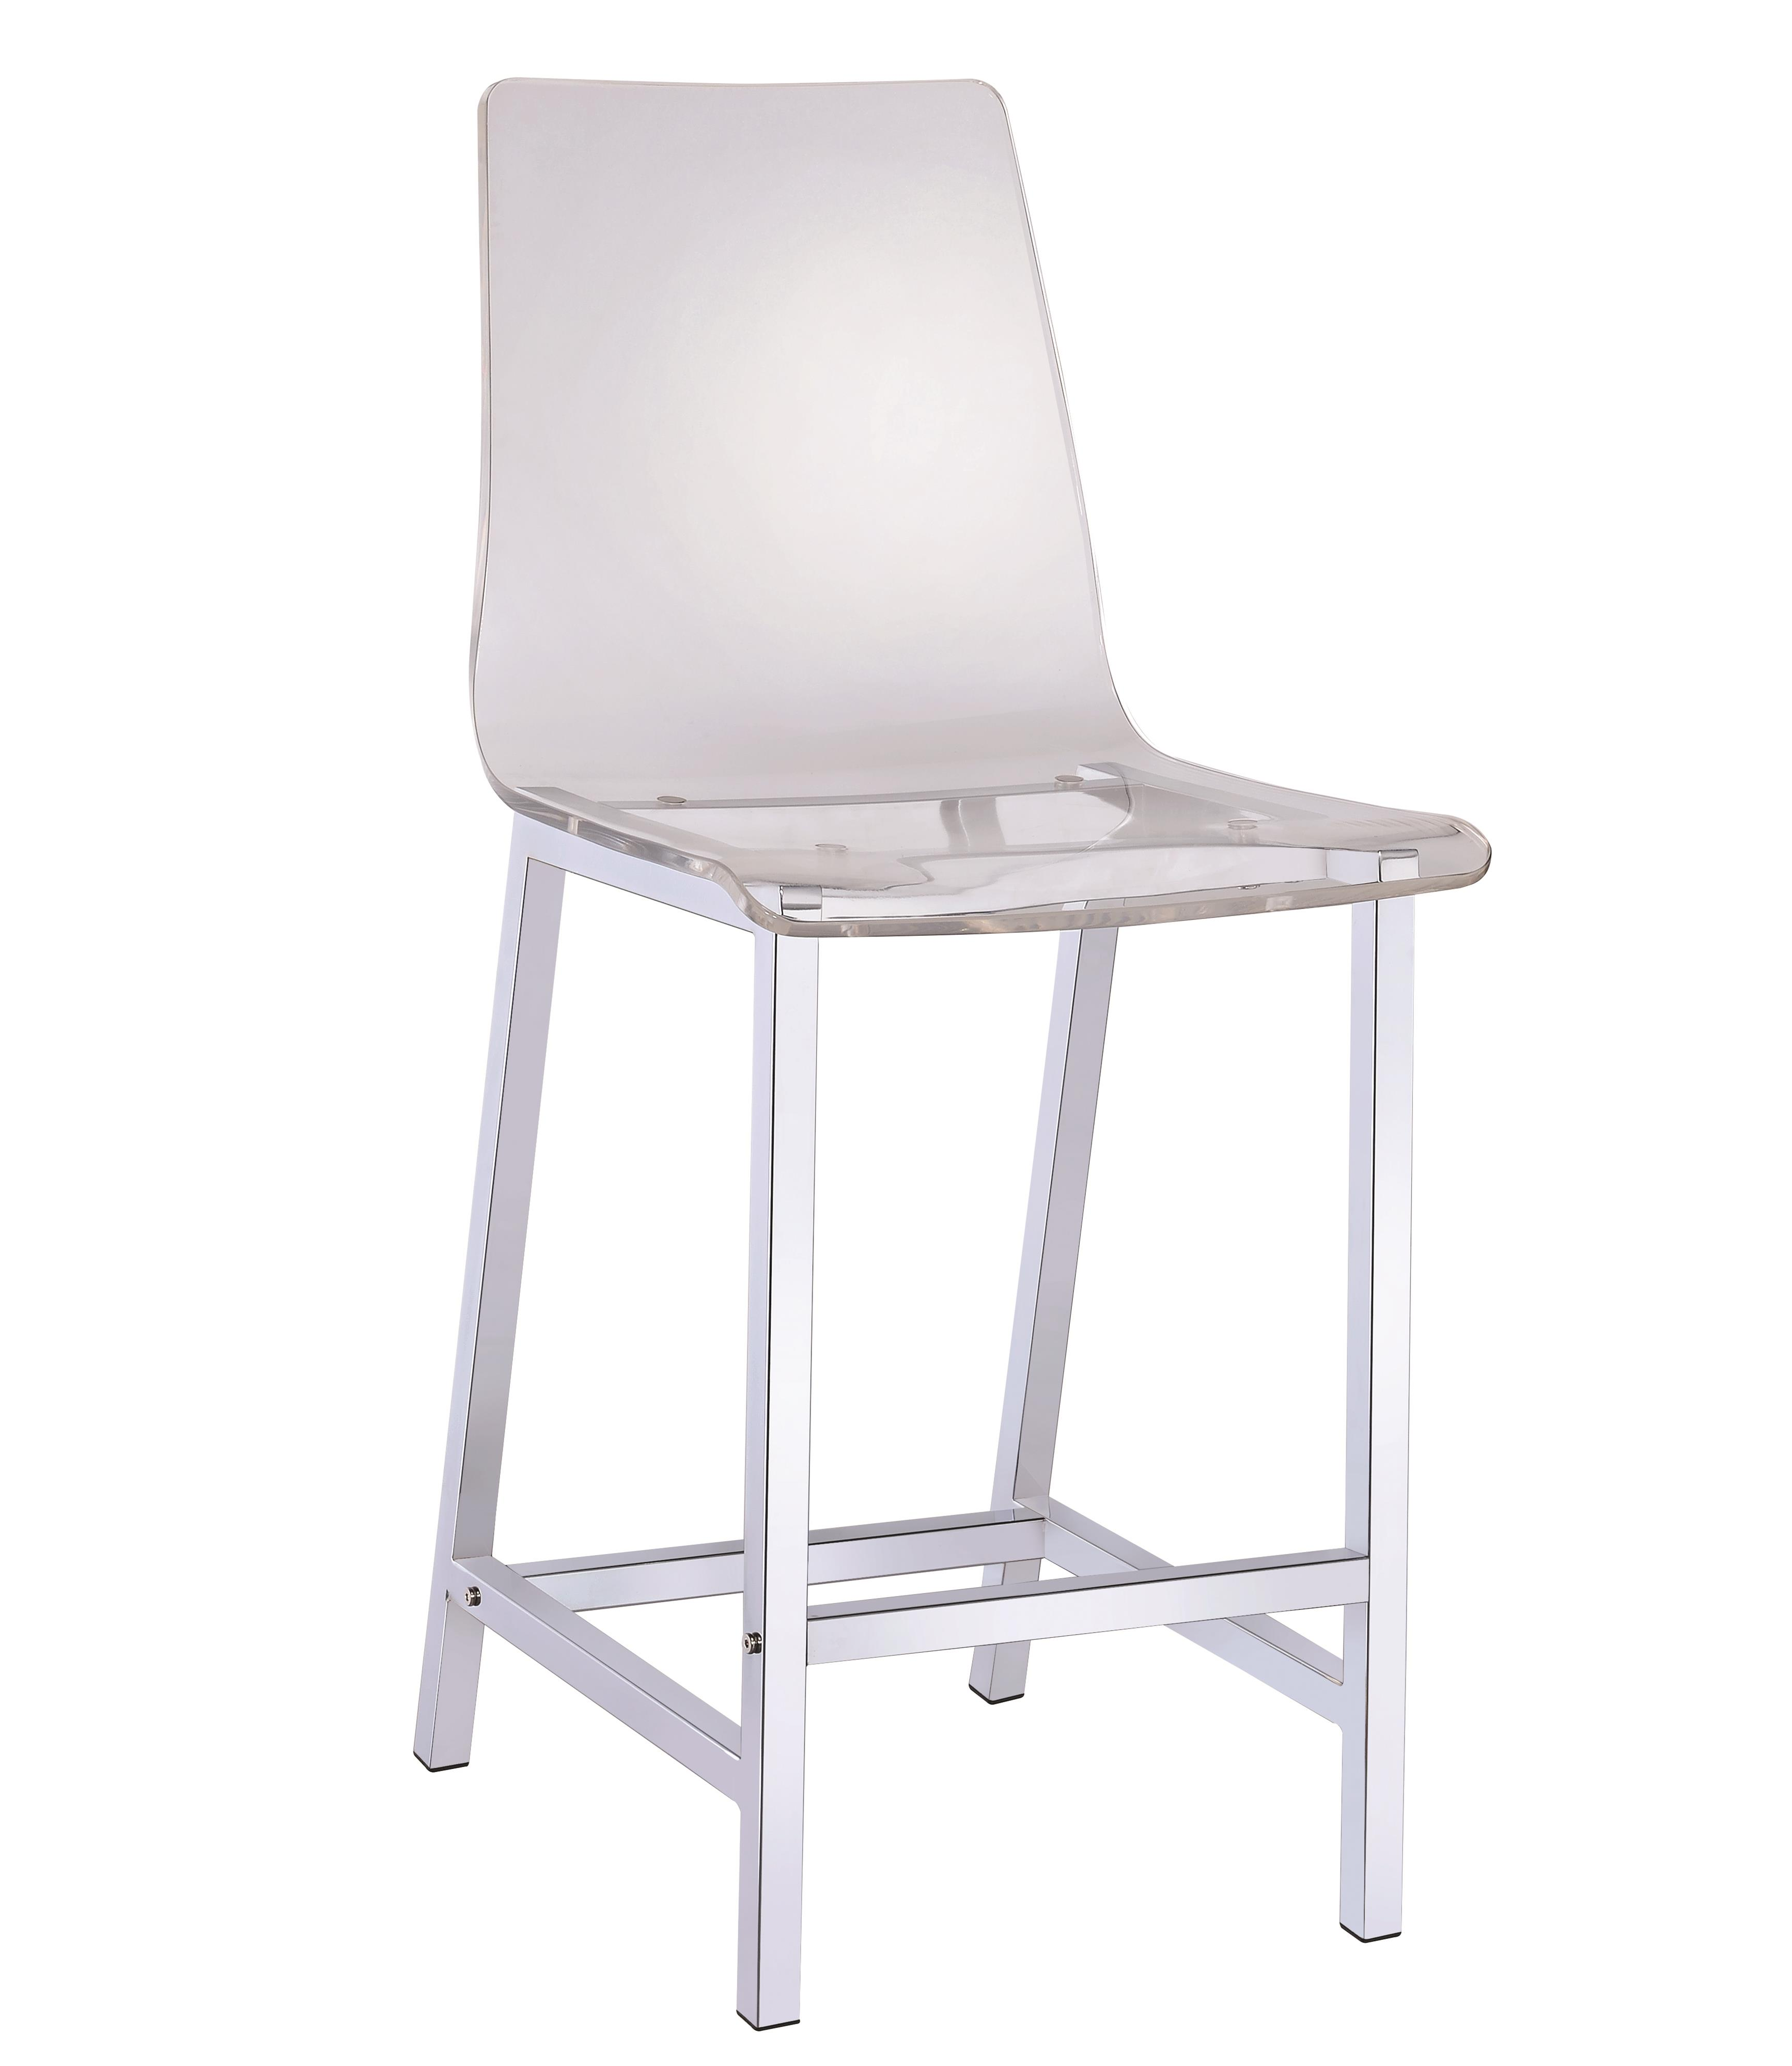 Bar Stool Chairs Dining Chairs And Bar Stools Acrylic Counter Height Stool With Chrome Base By Coaster At Rife S Home Furniture